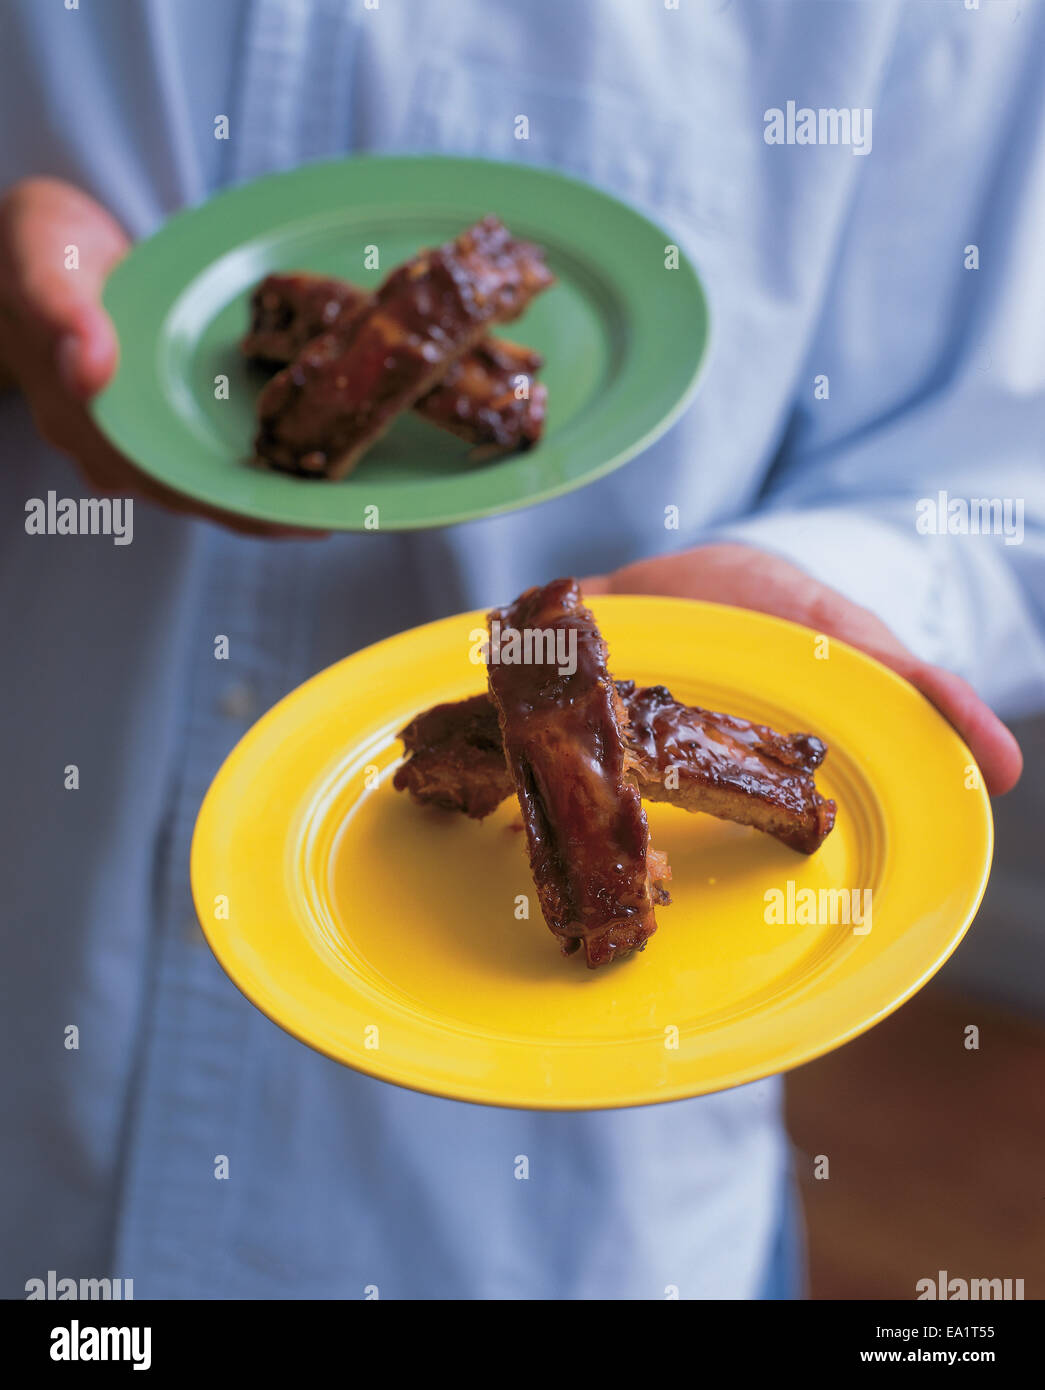 ribs on plate being handed out - Stock Image